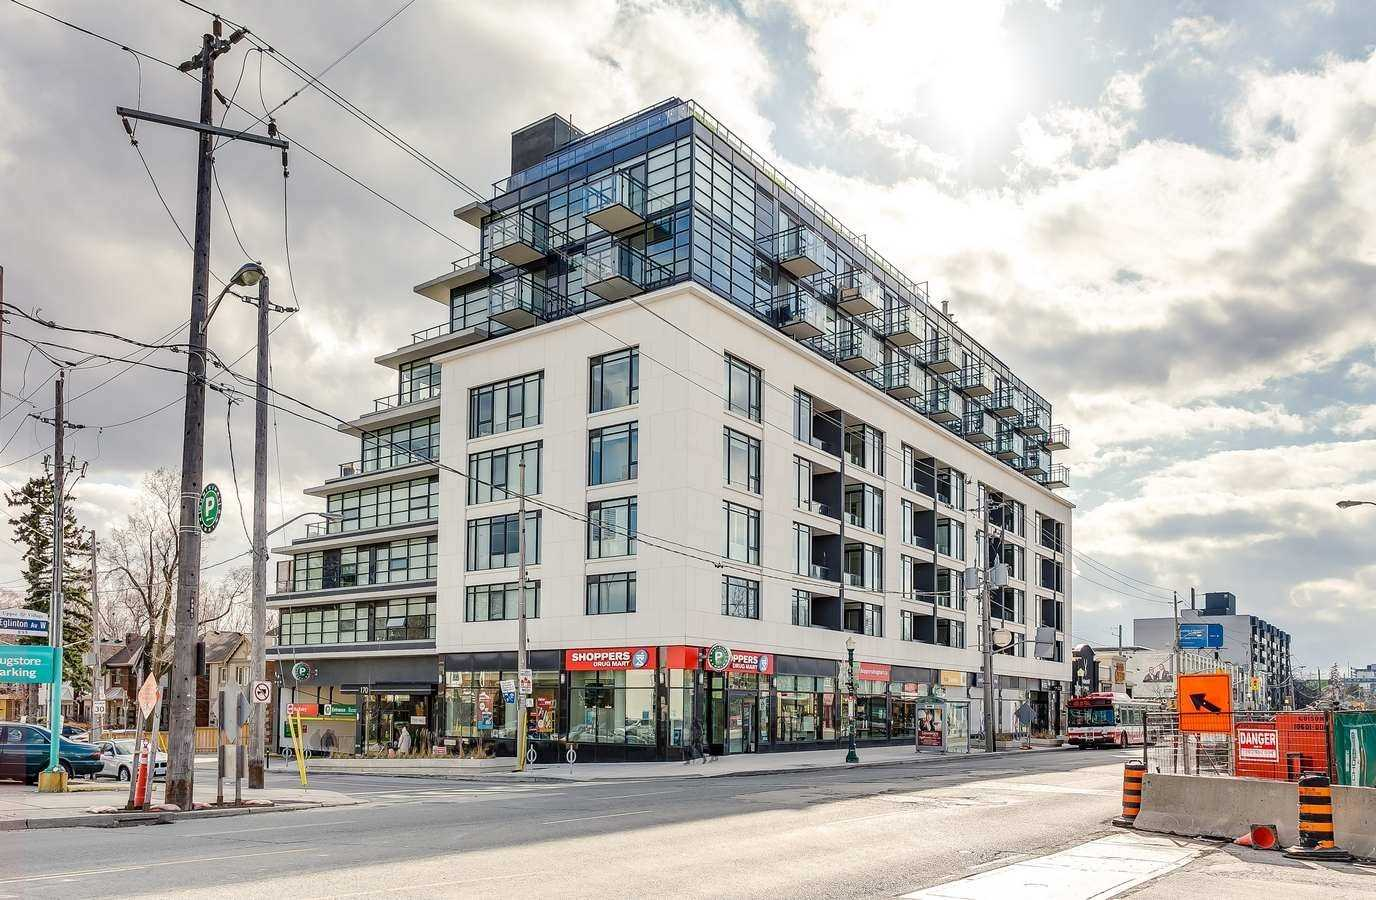 170 Chiltern Hill Rd, Toronto, Ontario M6C0A9, 1 Bedroom Bedrooms, 4 Rooms Rooms,1 BathroomBathrooms,Condo Apt,For Sale,Chiltern Hill,C4844438